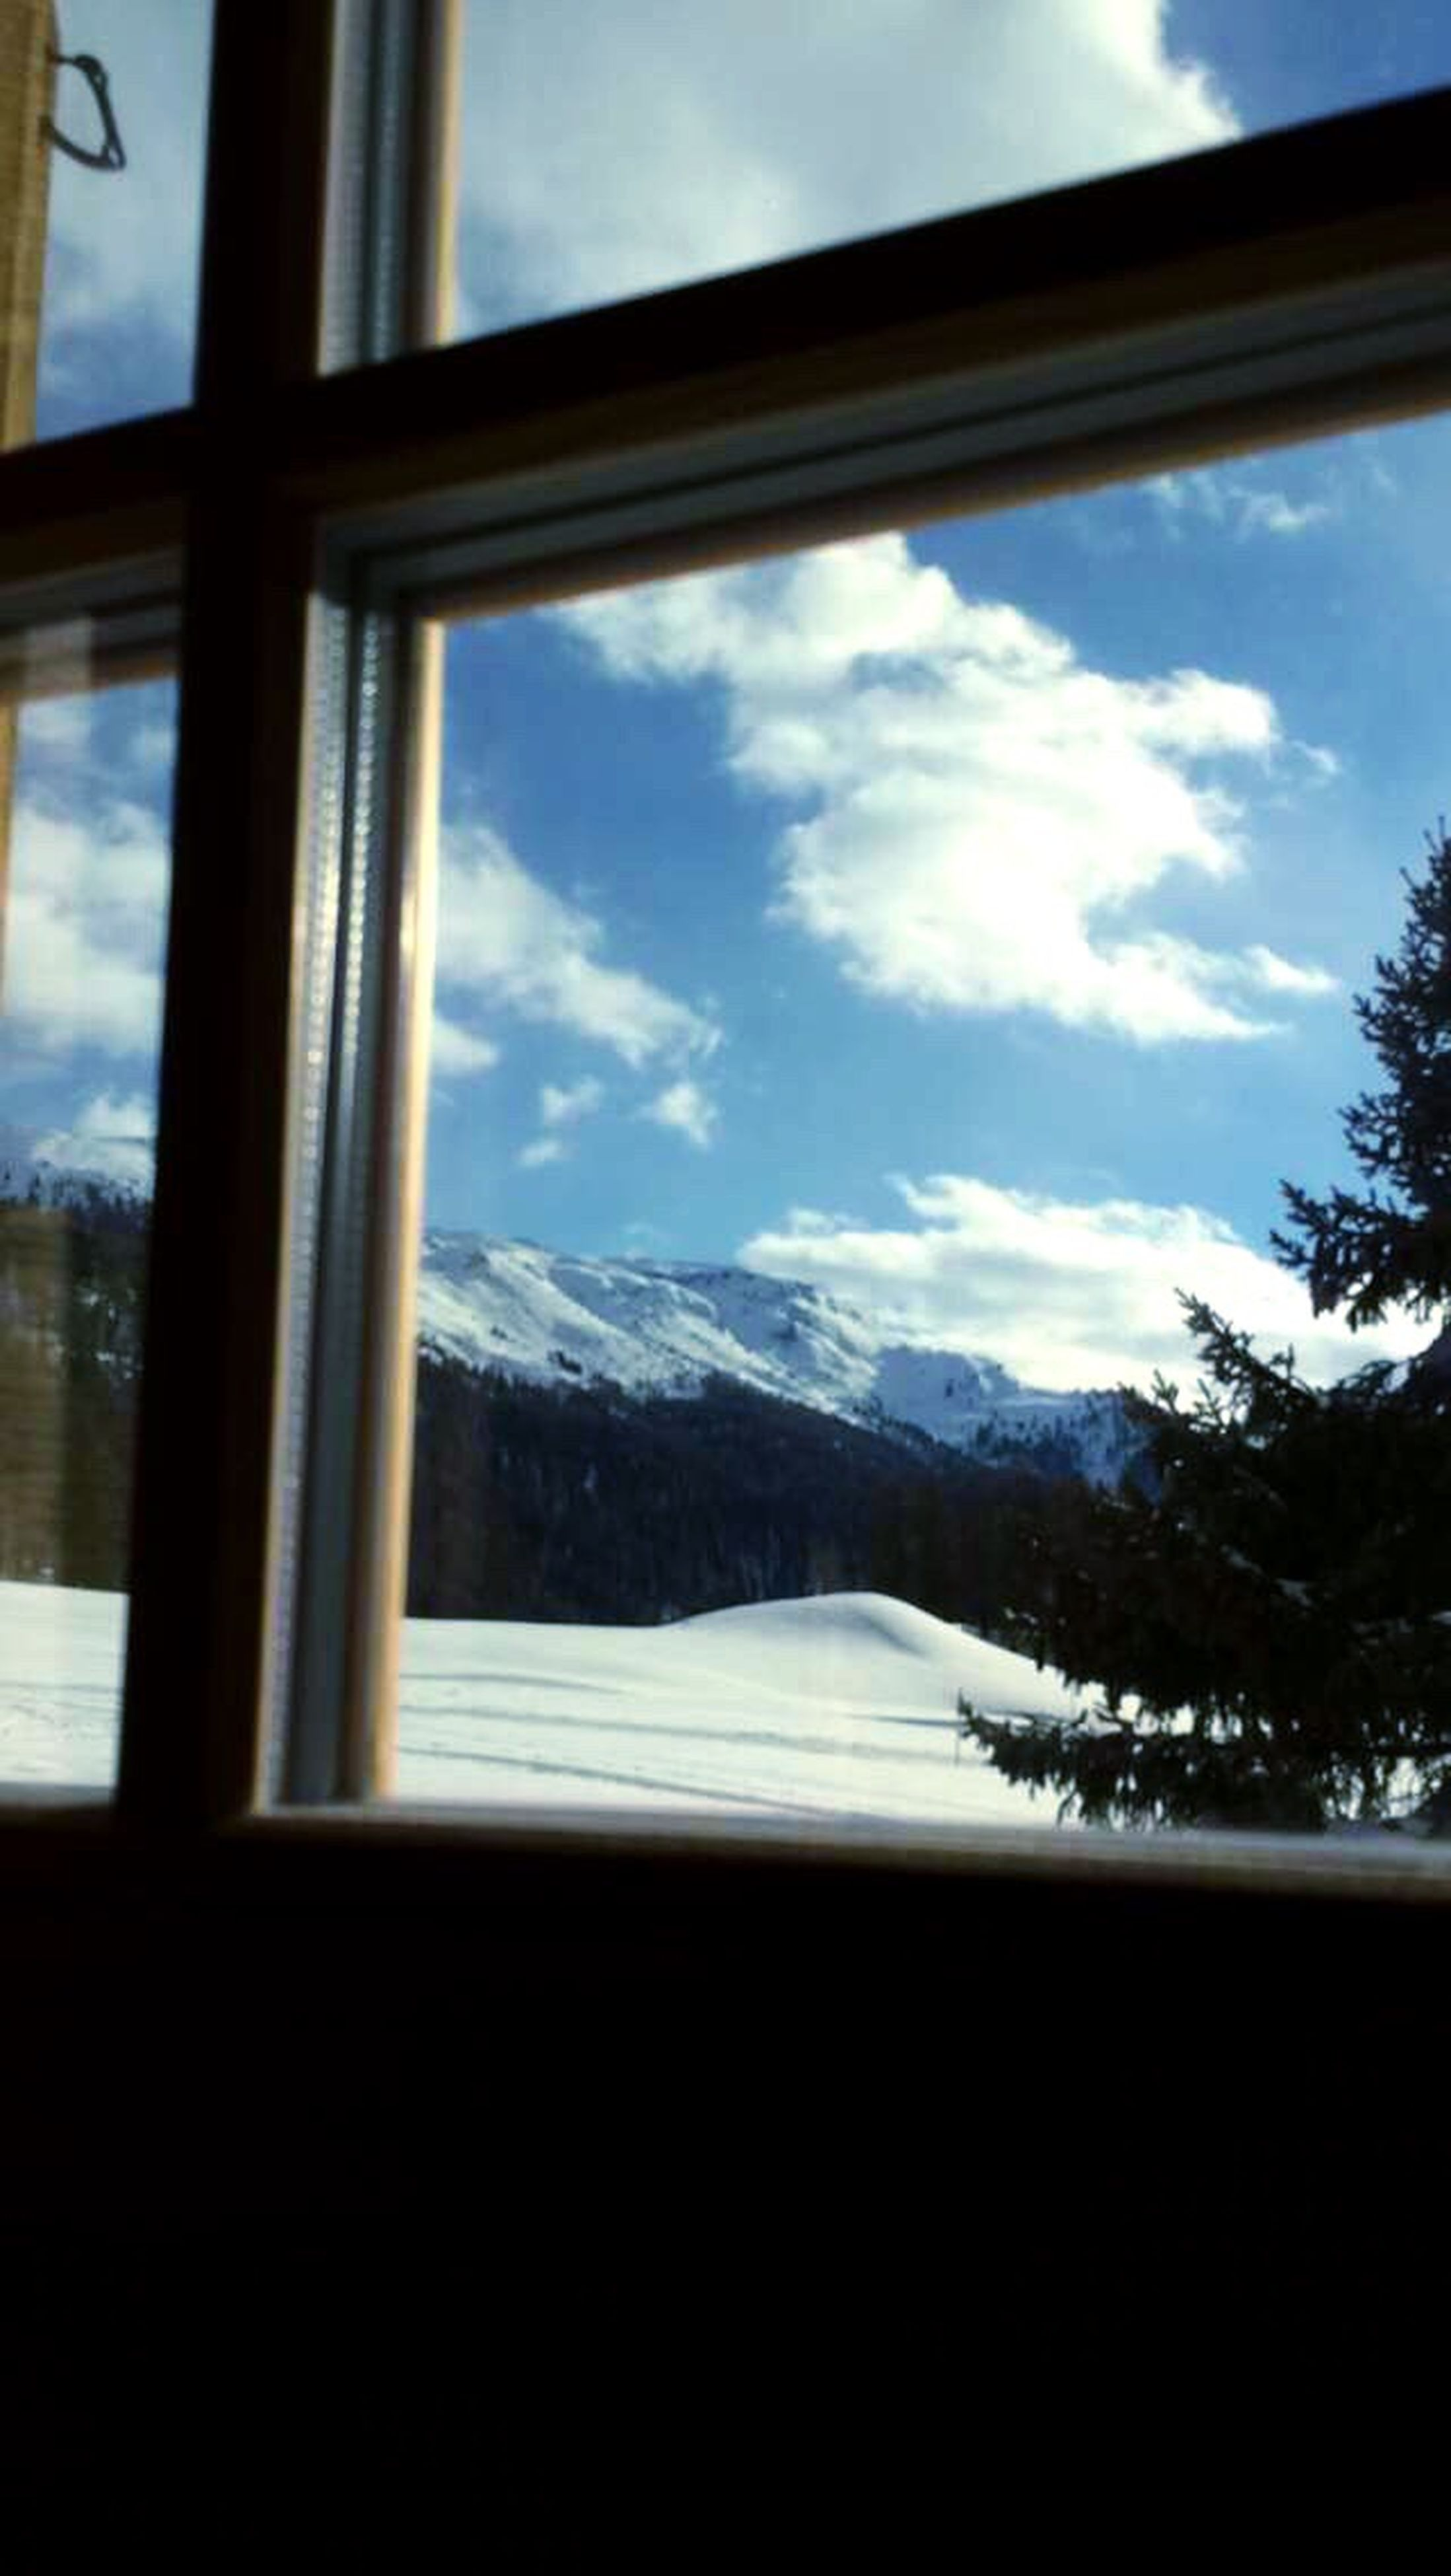 window, mountain, sky, transparent, glass - material, cloud - sky, indoors, cloud, mountain range, snow, winter, tree, landscape, cold temperature, scenics, day, nature, looking through window, tranquility, tranquil scene